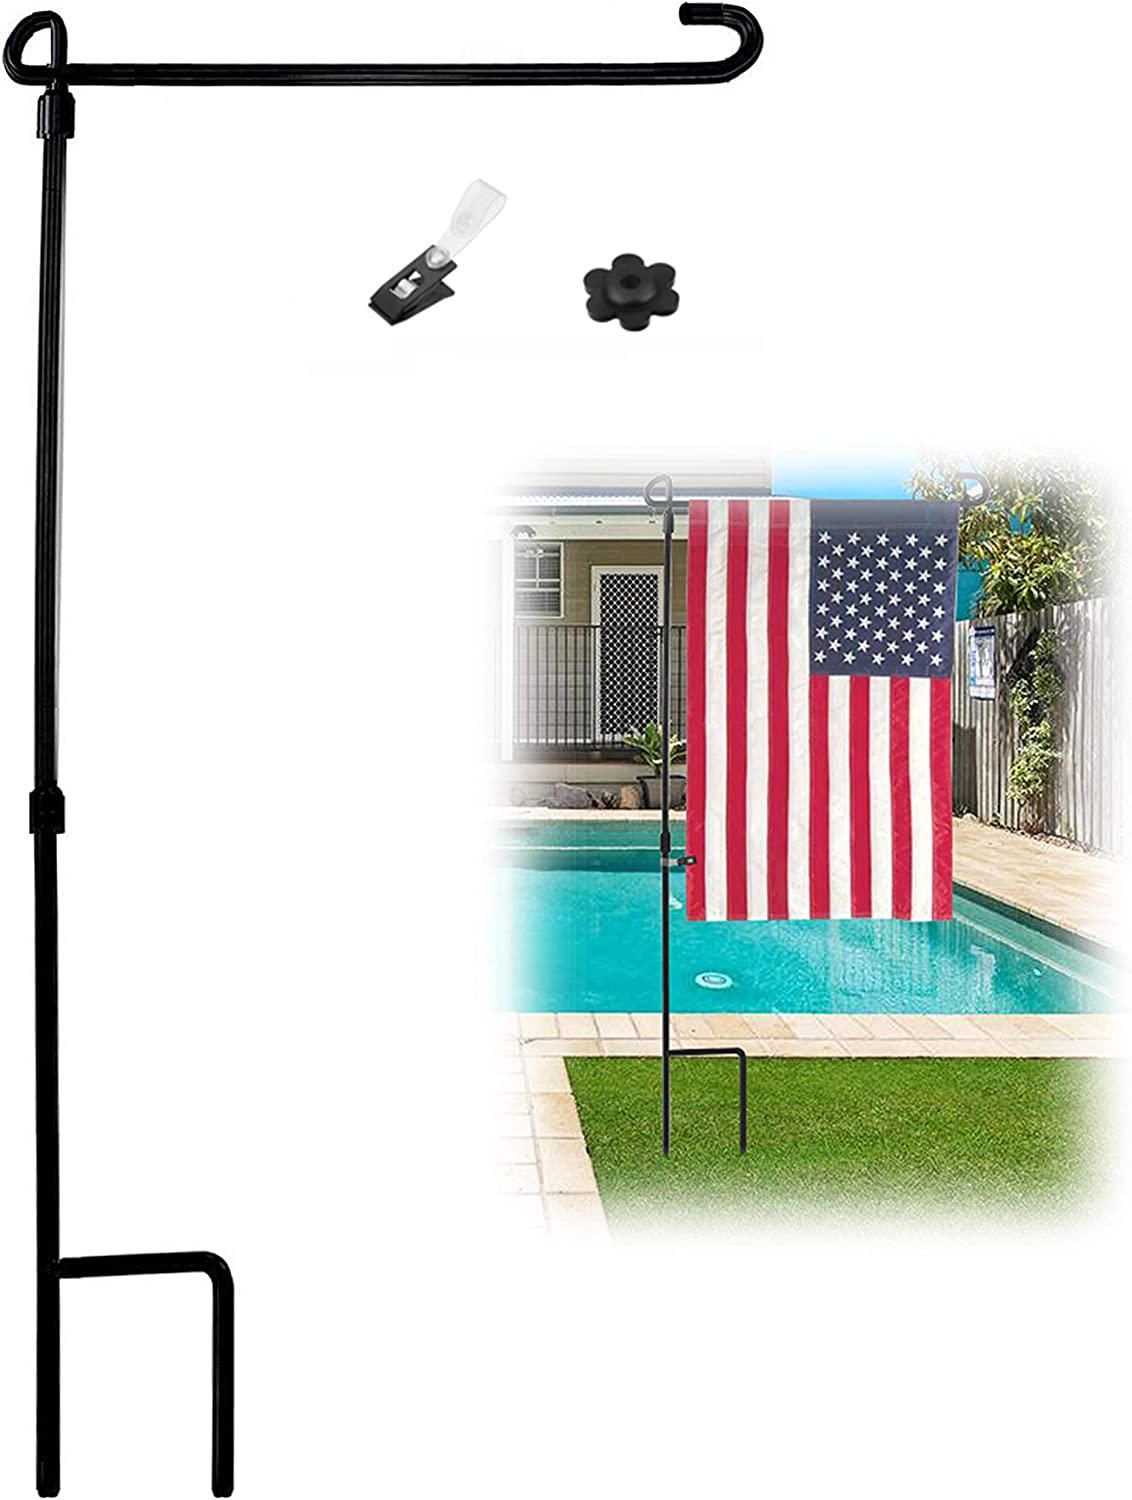 "Garden Flag Stand Pole Holder with Garden Flag Stopper and Anti-Wind Clip 34"" H x 15"" W for Metal Wrought Iron Powder Coated Painting Steel"